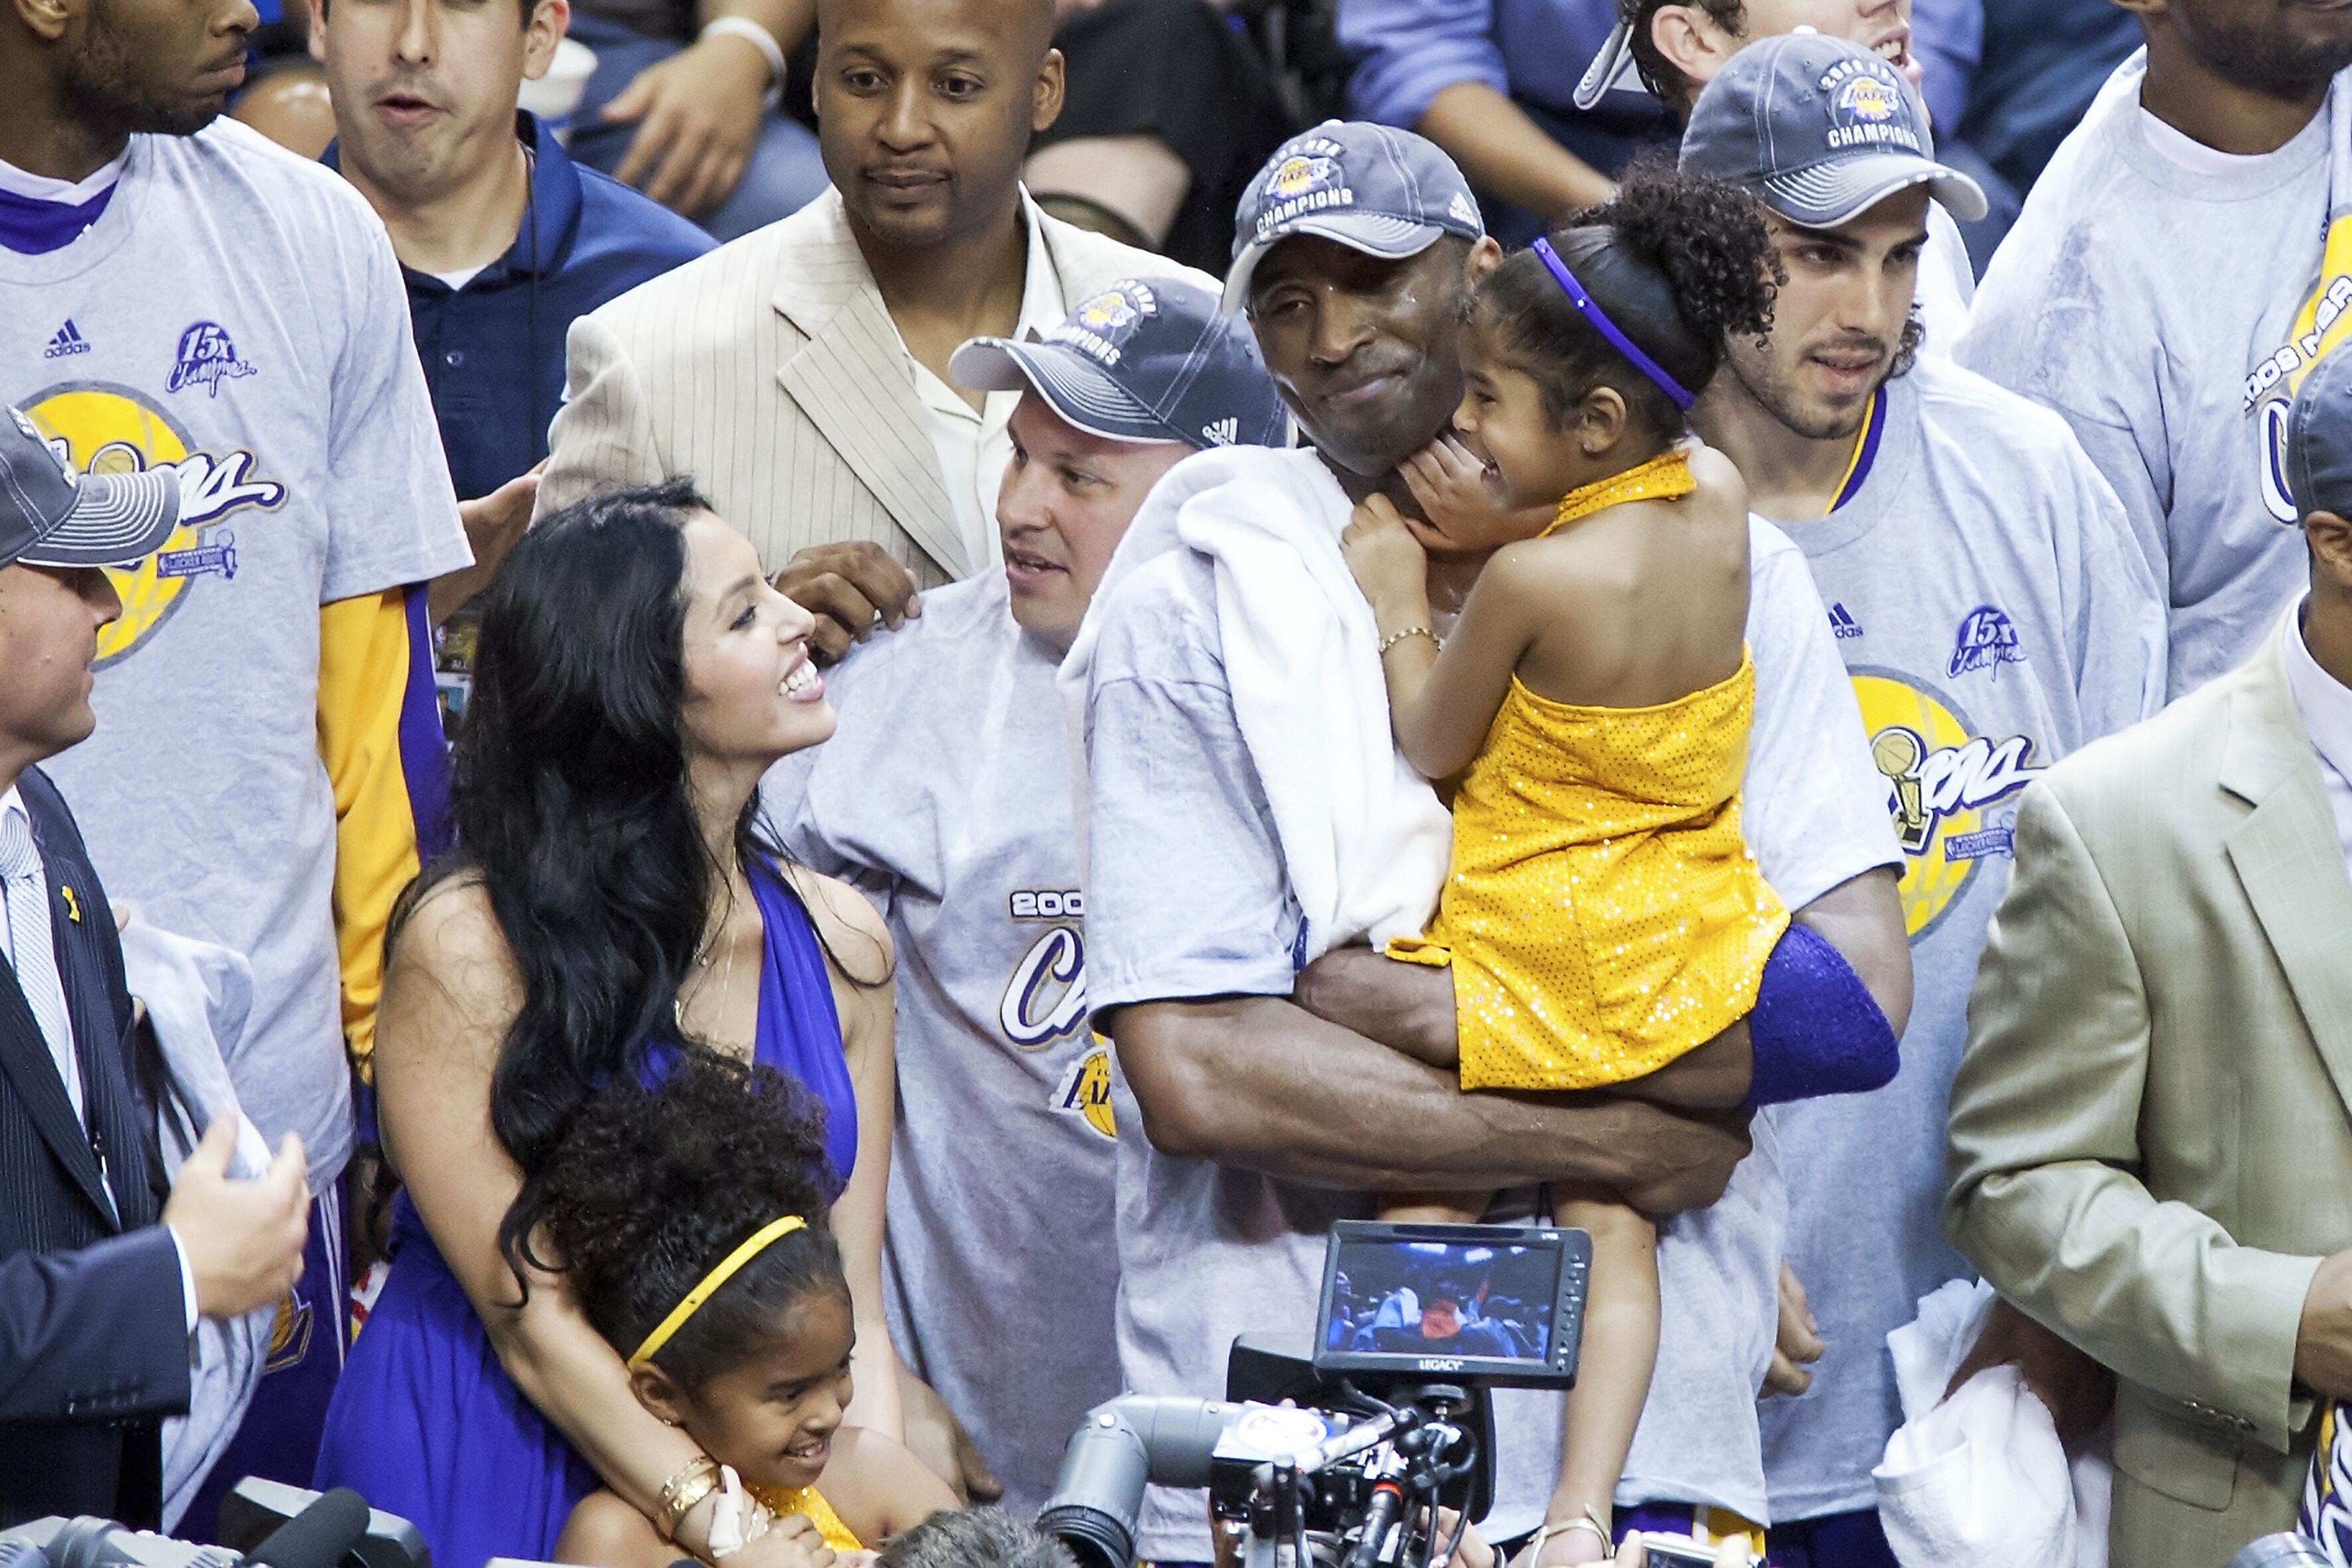 Kobe and Vanessa Bryant celebrate an LA Lakers championship with their daughters Natalia and Gianna | Source: Getty Images